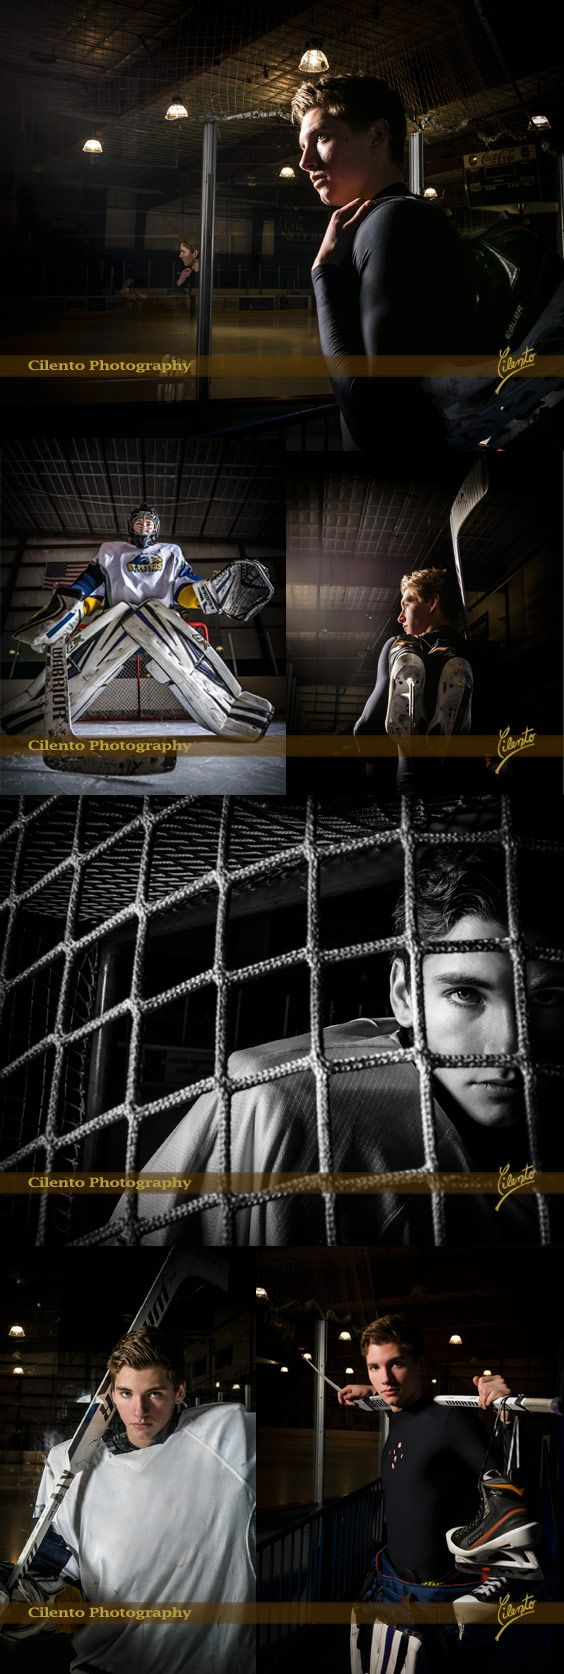 You've put in the work & built the skills - now capture the glory in your high school senior pictures. Arrange for your professional photographer to come to the rink for amazing hockey pictures.